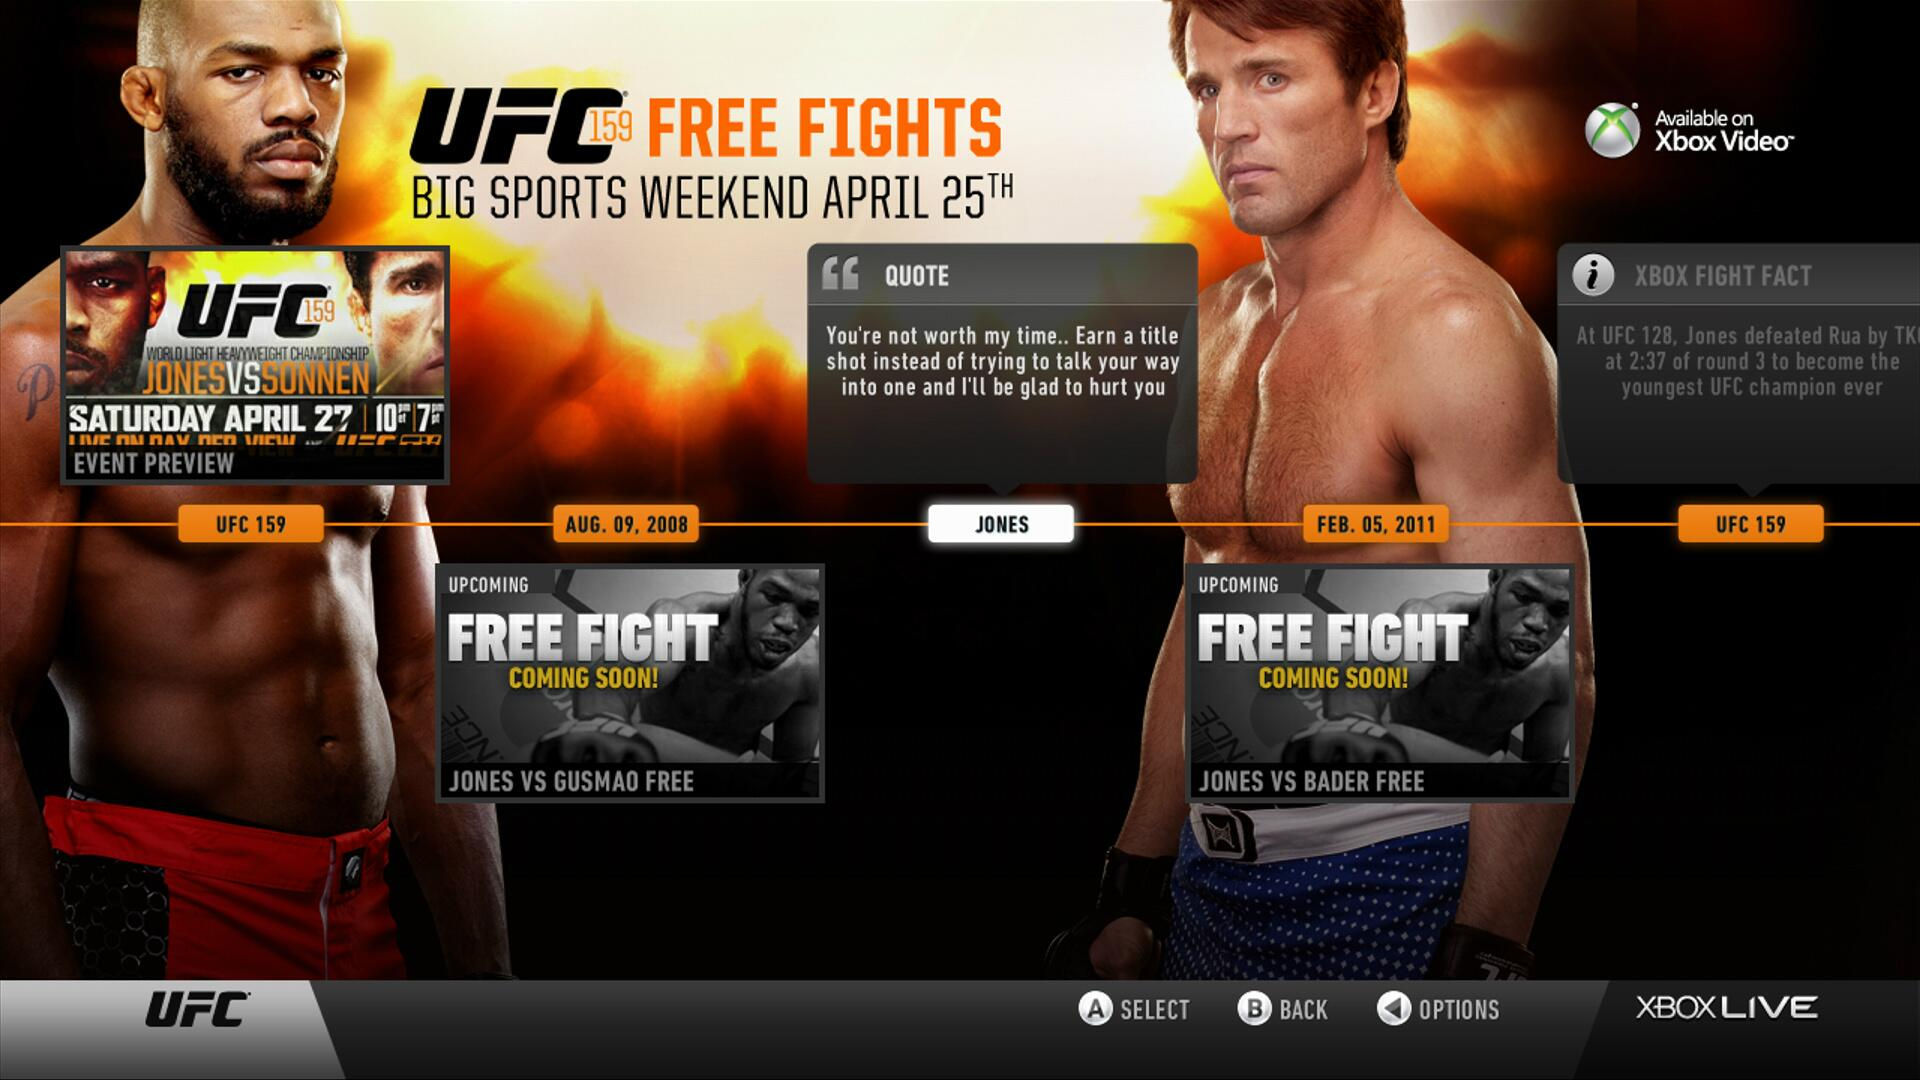 Twitter / RichFranklin: get 7 FREE fights as part of ...